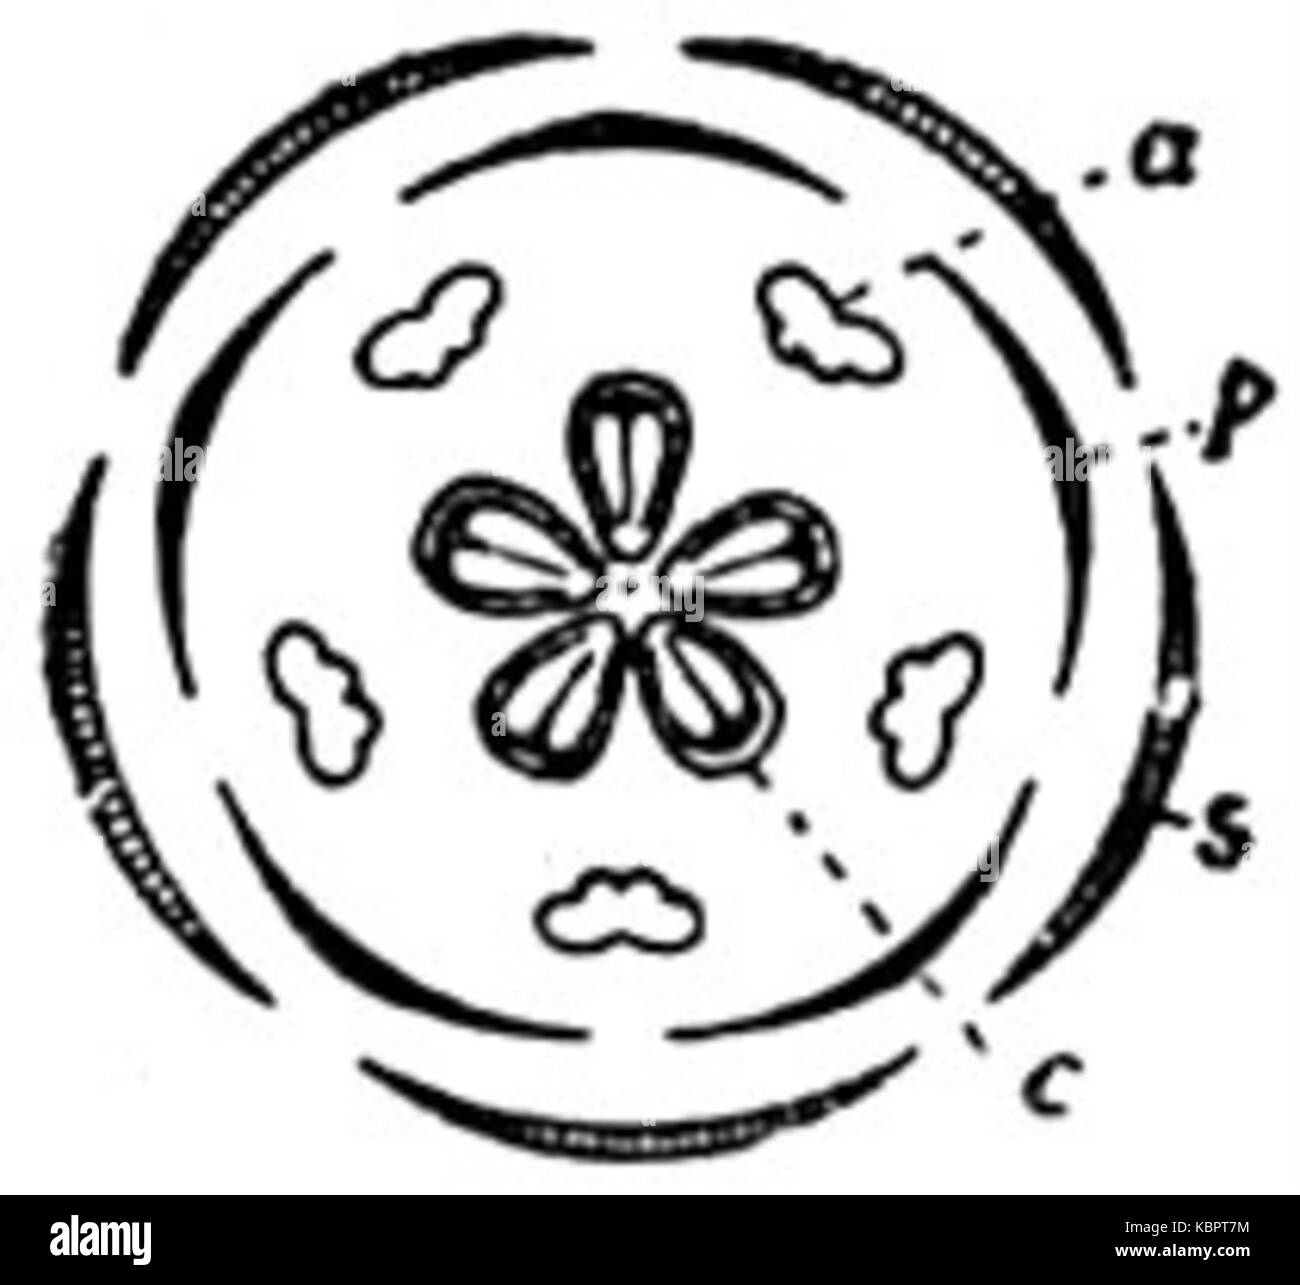 hight resolution of eb1911 flower diagram of a completely symmetrical flower stock image